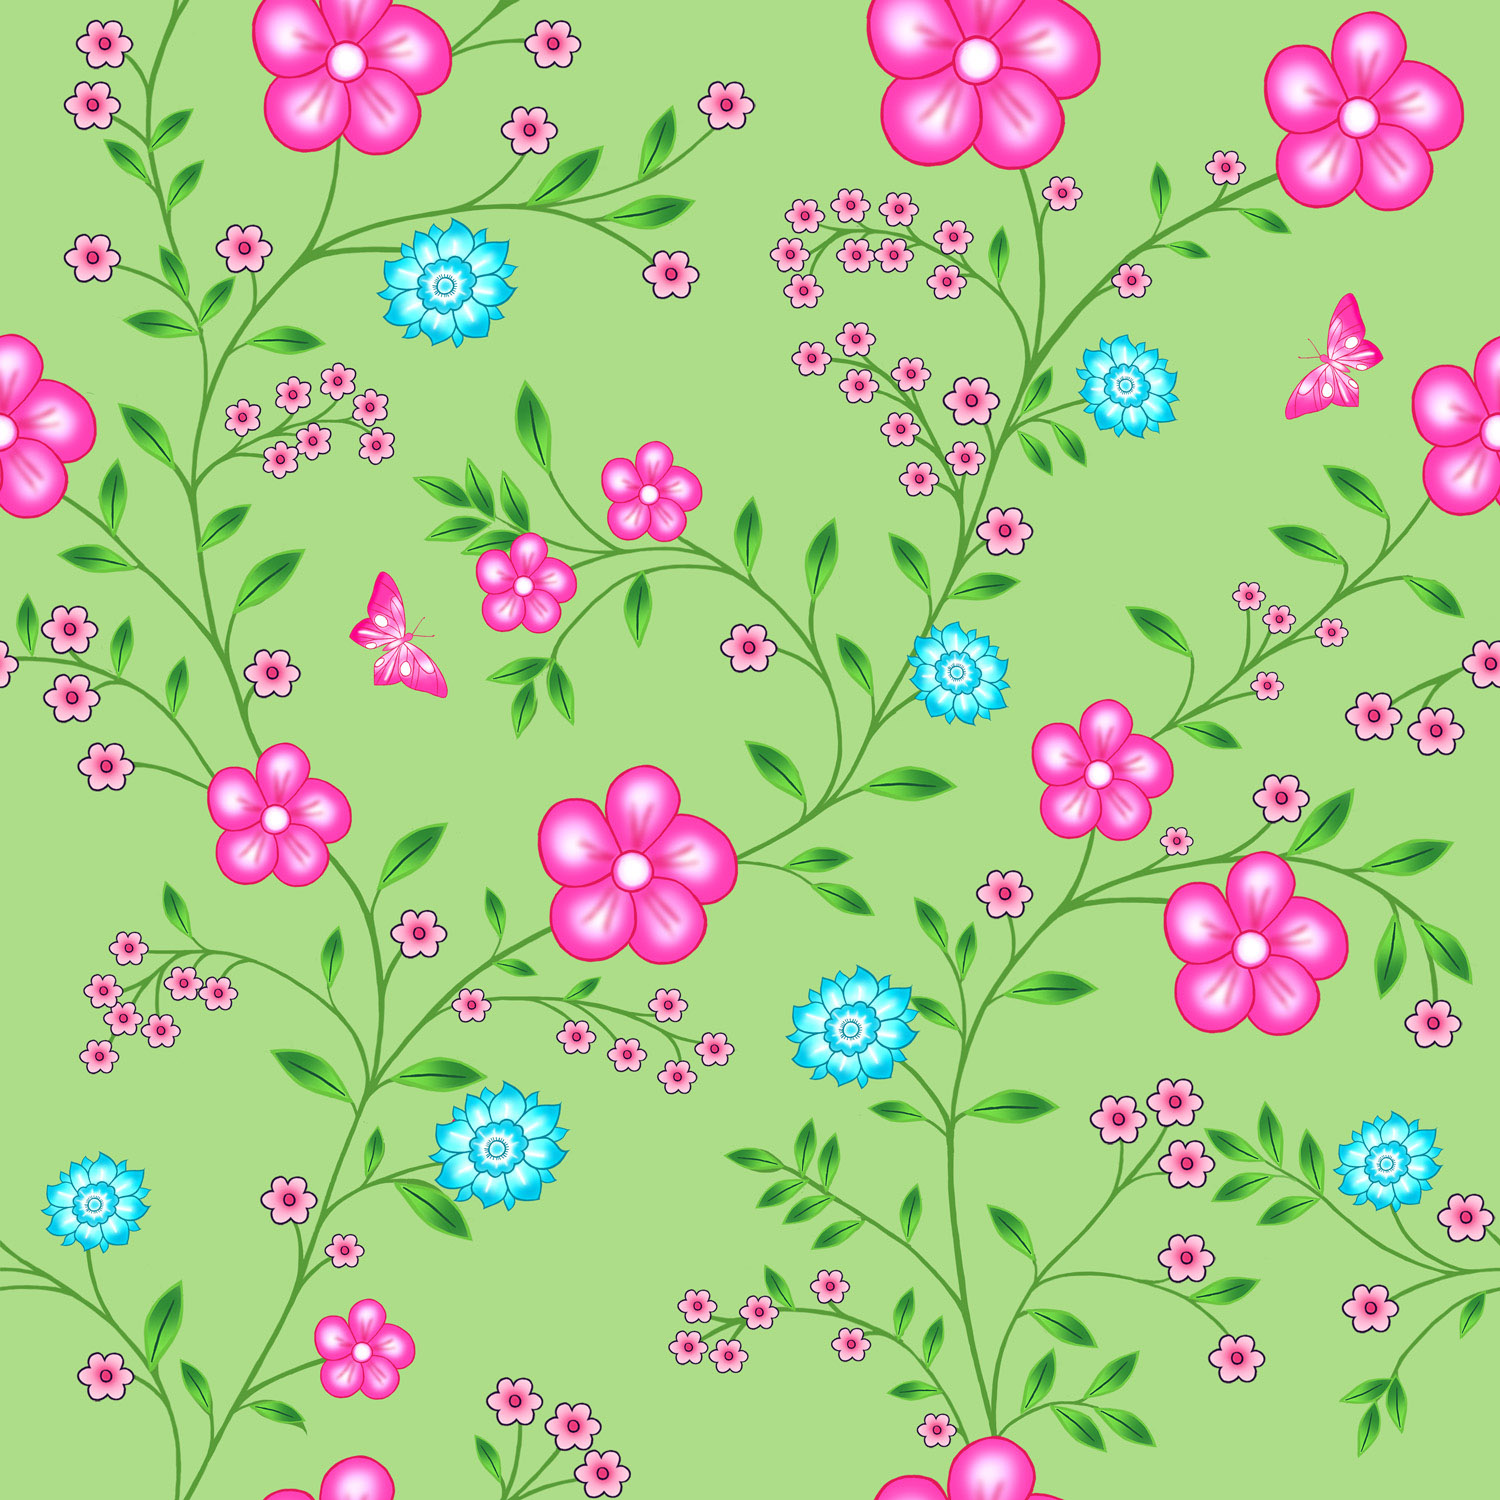 CARPET OF FLOWERS – Design Ref. 2503